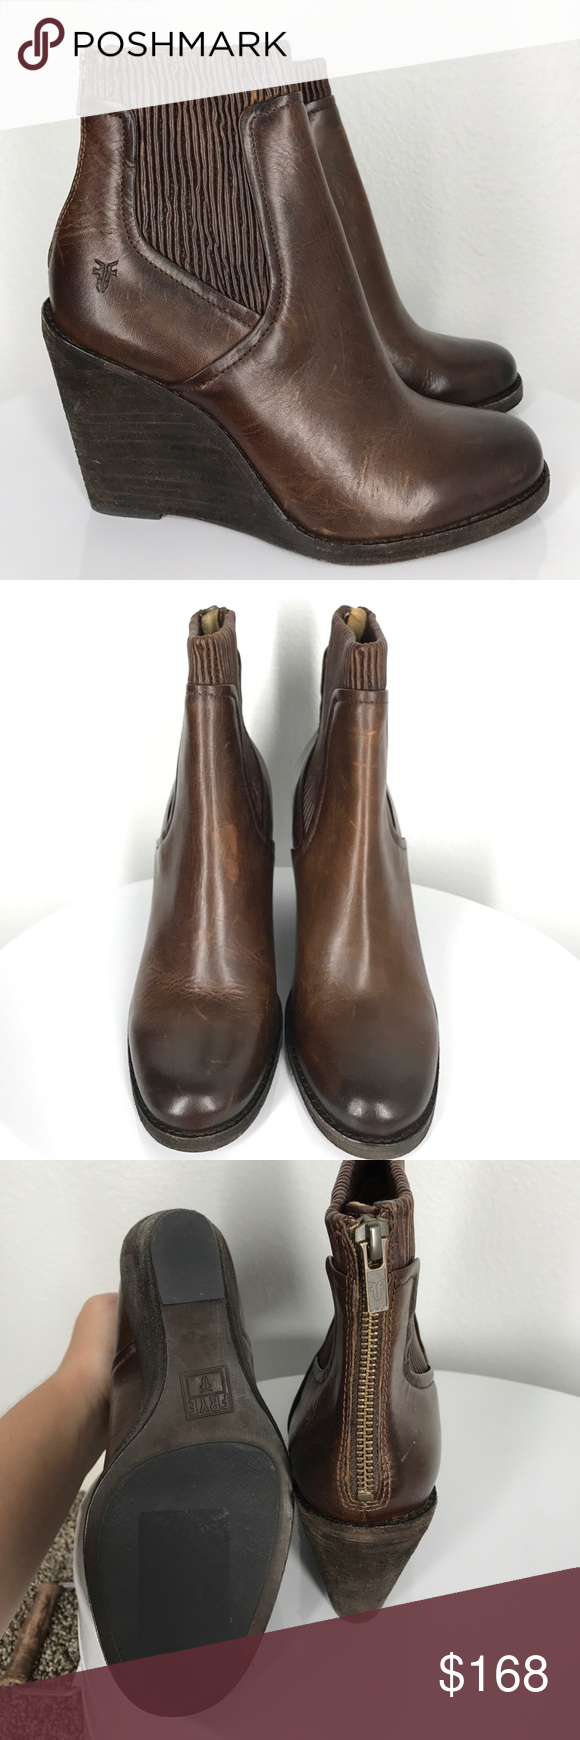 f91eef481a2a Frye Carrie scrunch ankle wedge boots size 8